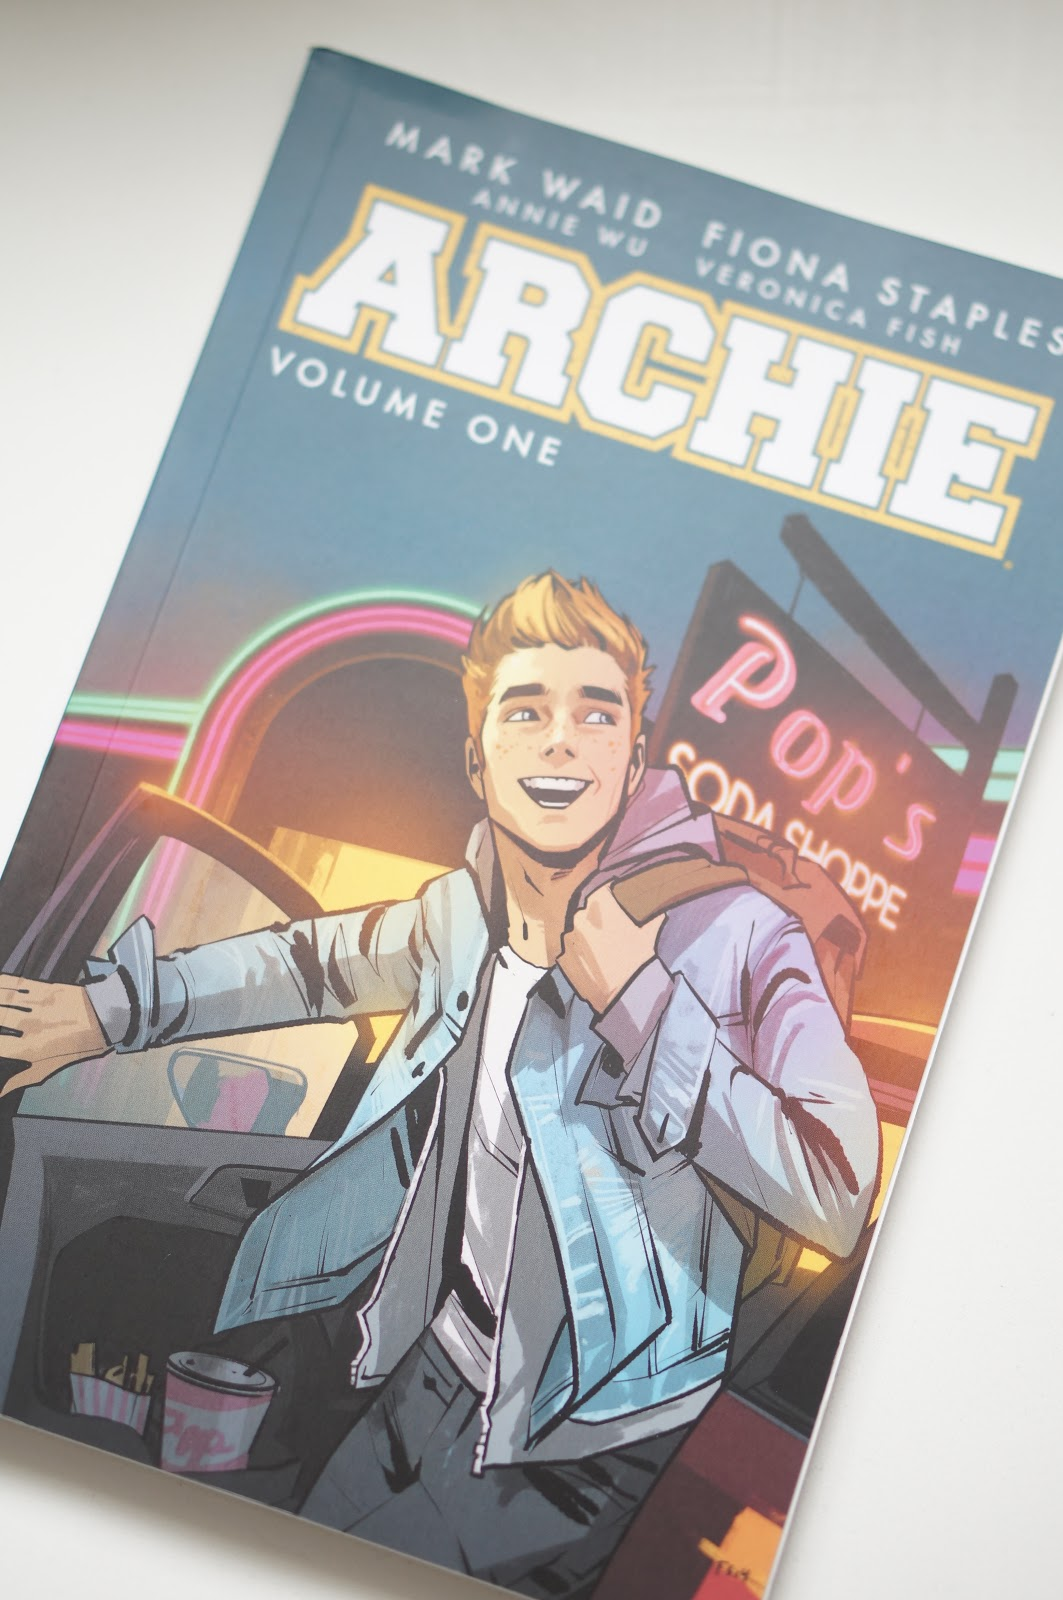 Popular North Carolina style blogger Rebecca Lately shares her recent stack of books to read.  Click here to read about the Archie comics!